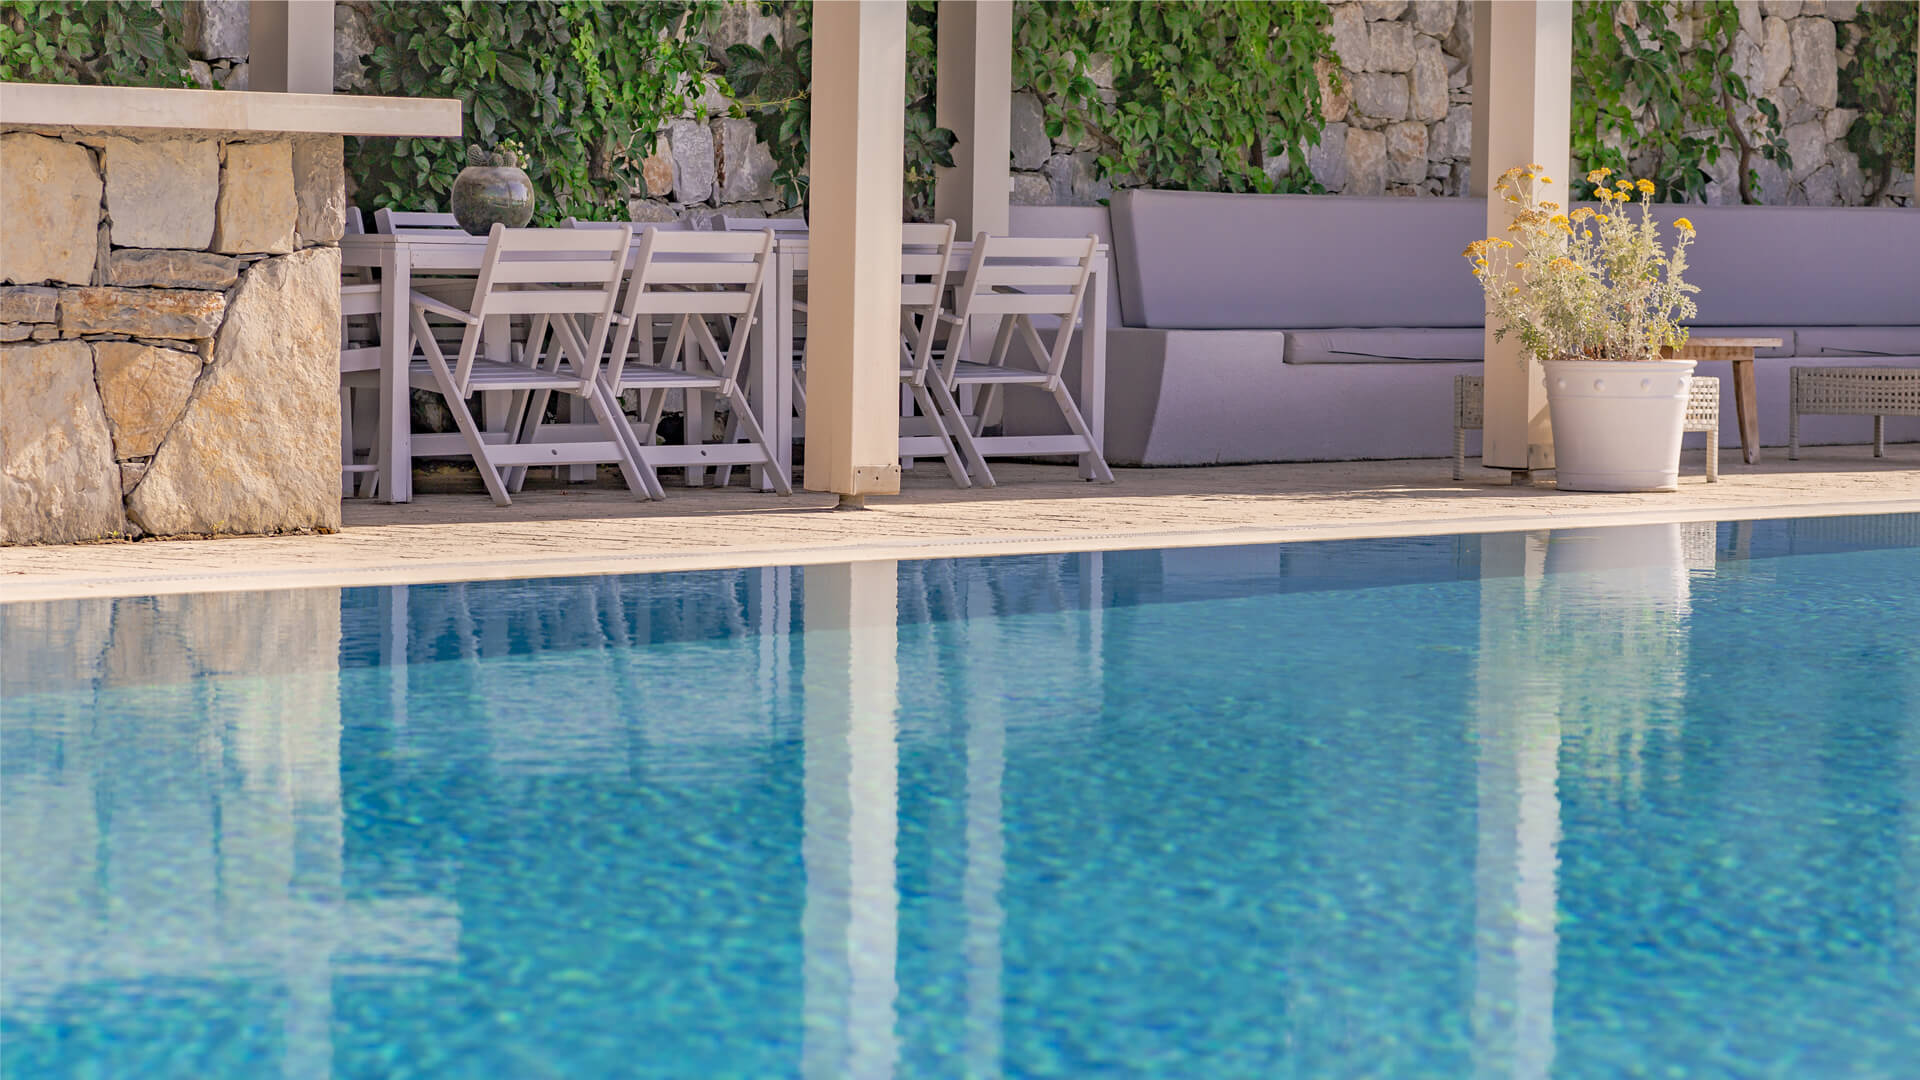 Get your Swimming Pool Clarity Clear with our No-Drain PuriPool Water Purification Process